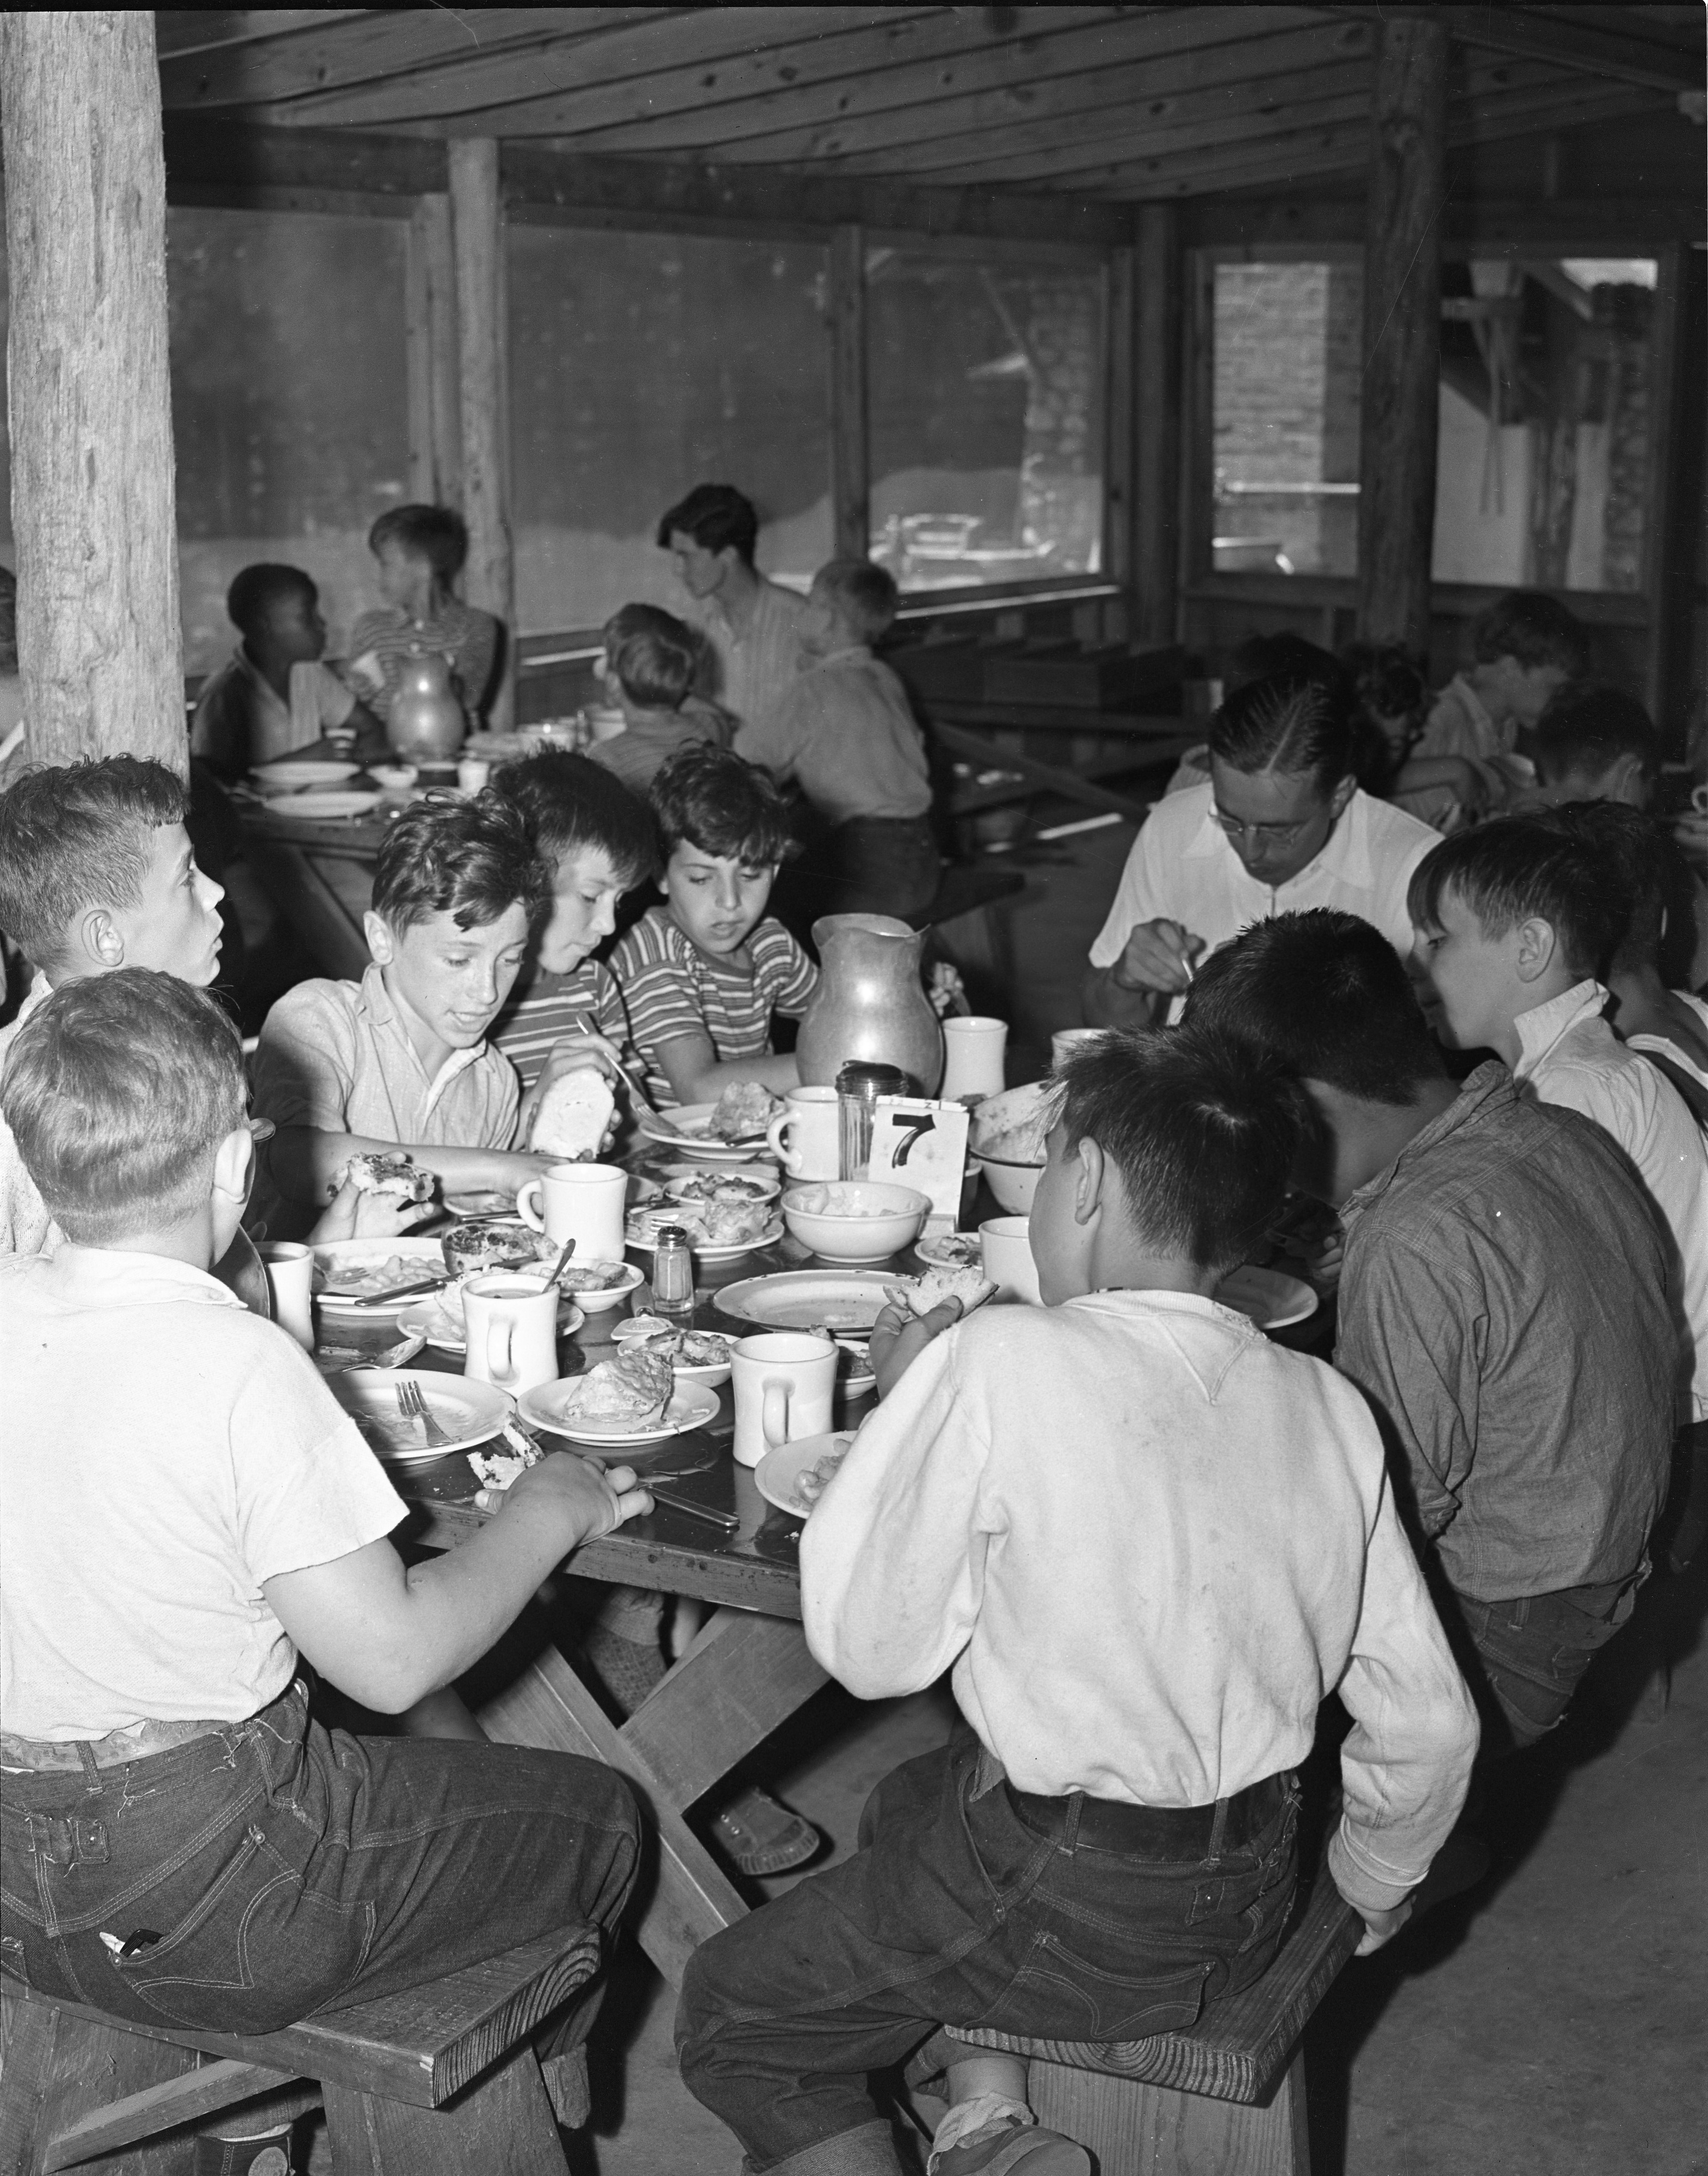 The Dining Hall At The University Of Michigan's Fresh Air Camp, July 1939 image